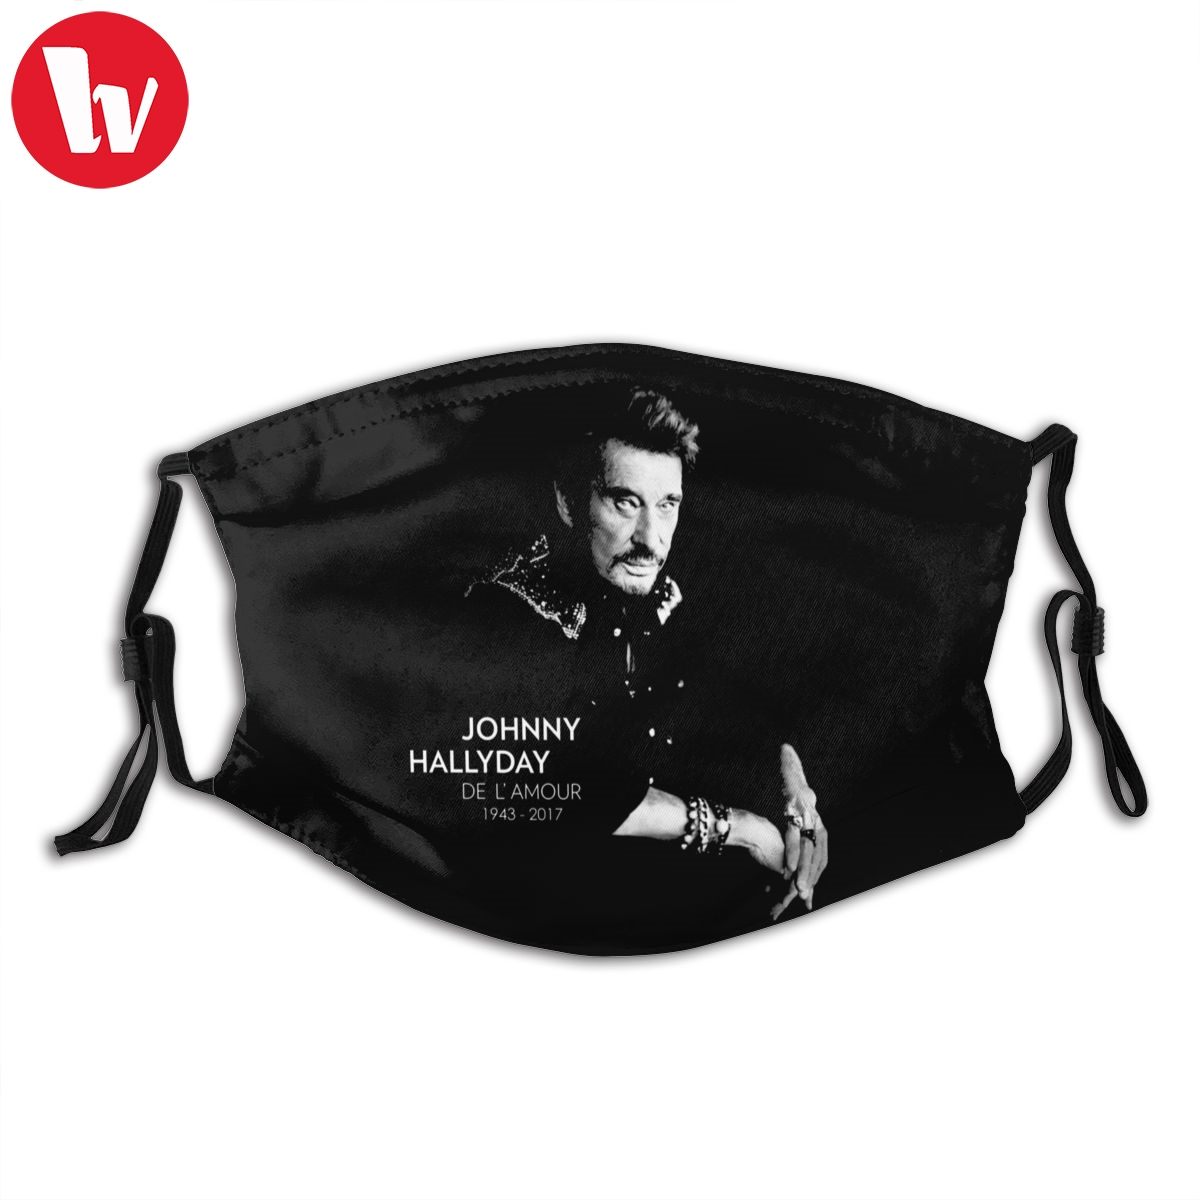 Johnny Hallyday Mouth Face Mask Johnny Hallyday Facial Mask Cool Fashion With 2 Filters For Adult